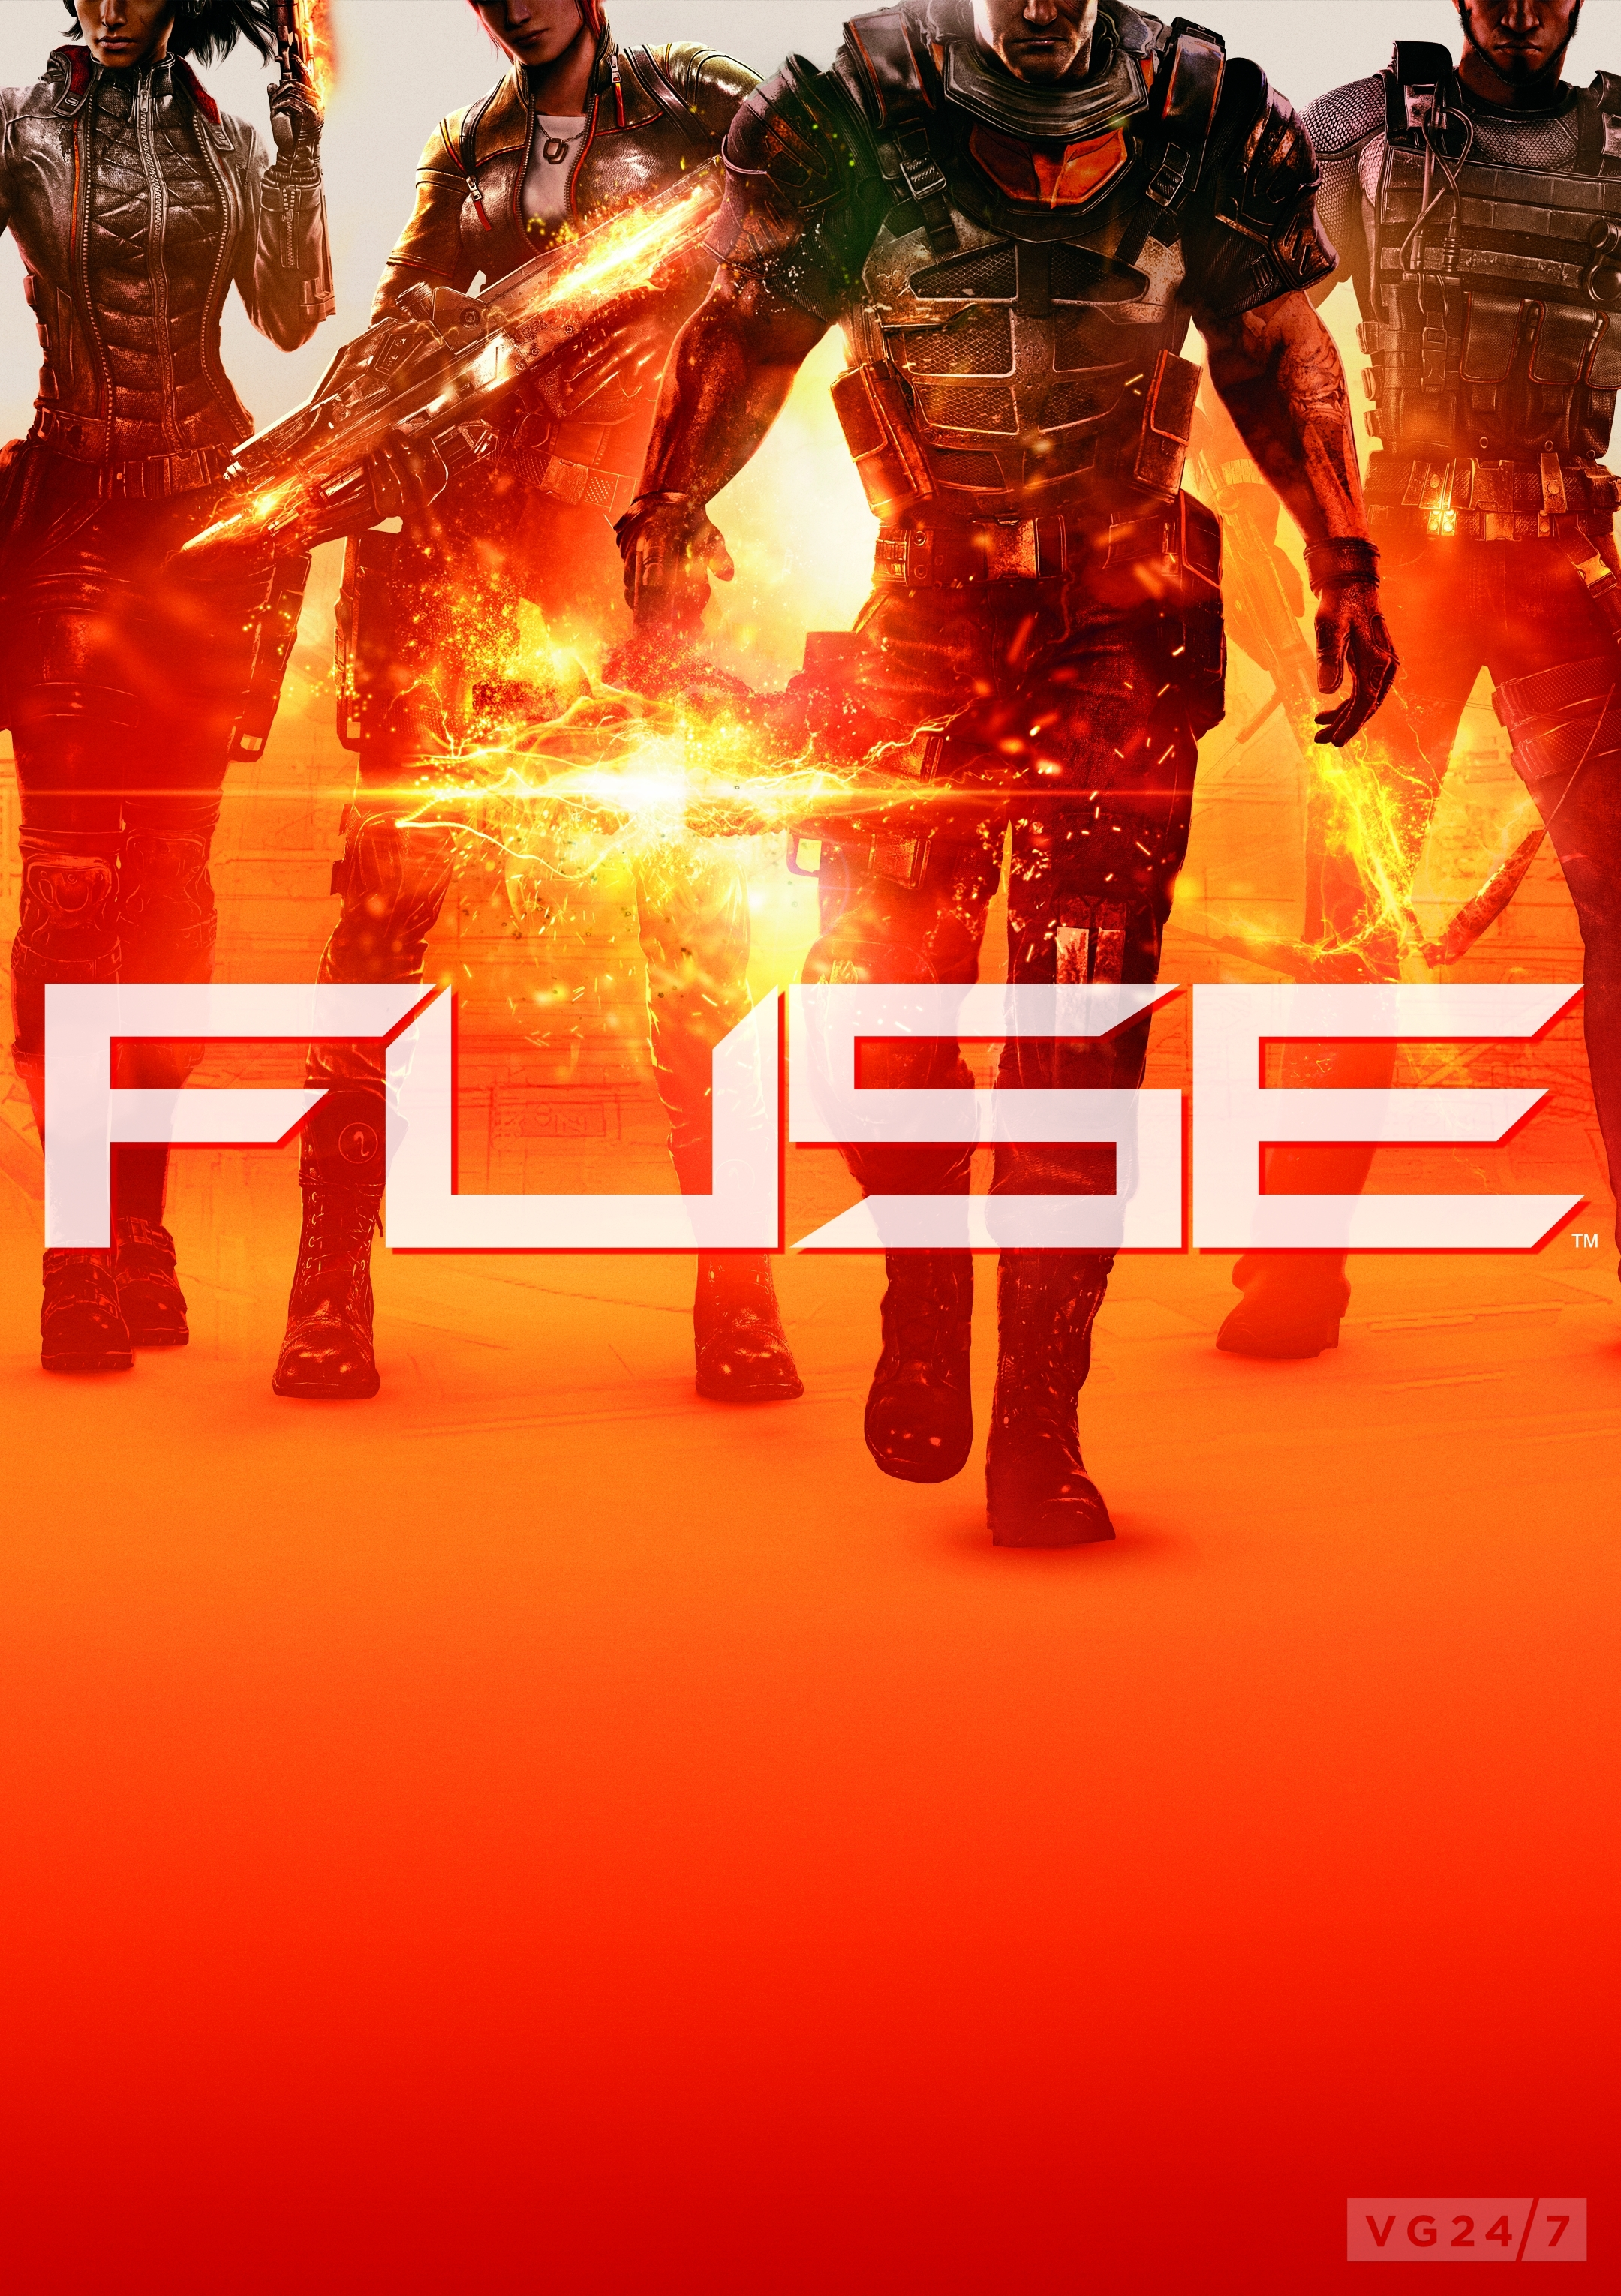 fuse boxart chops everyone's heads off